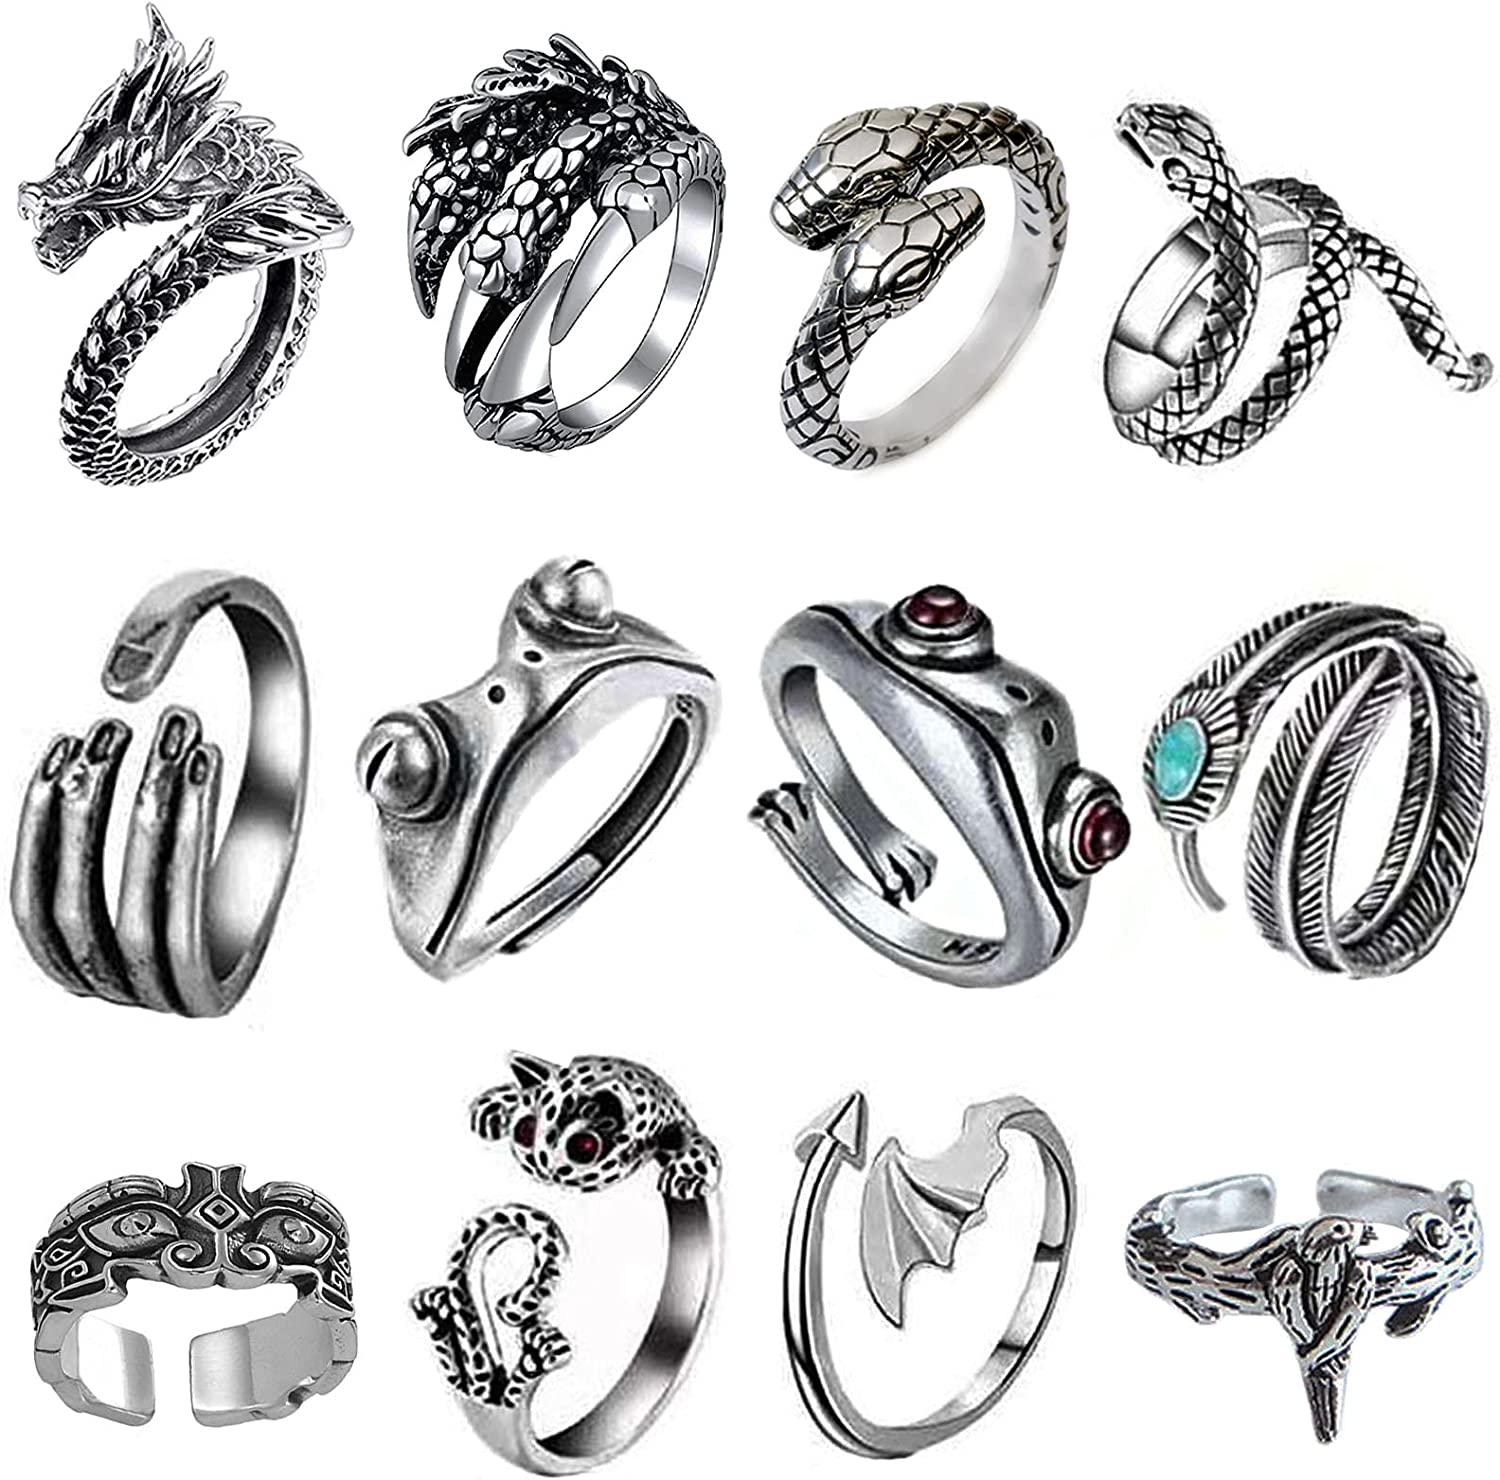 Silver Plated Vintage Open Frog Animal Retro Max 78% OFF Cute Snake Rings Super popular specialty store